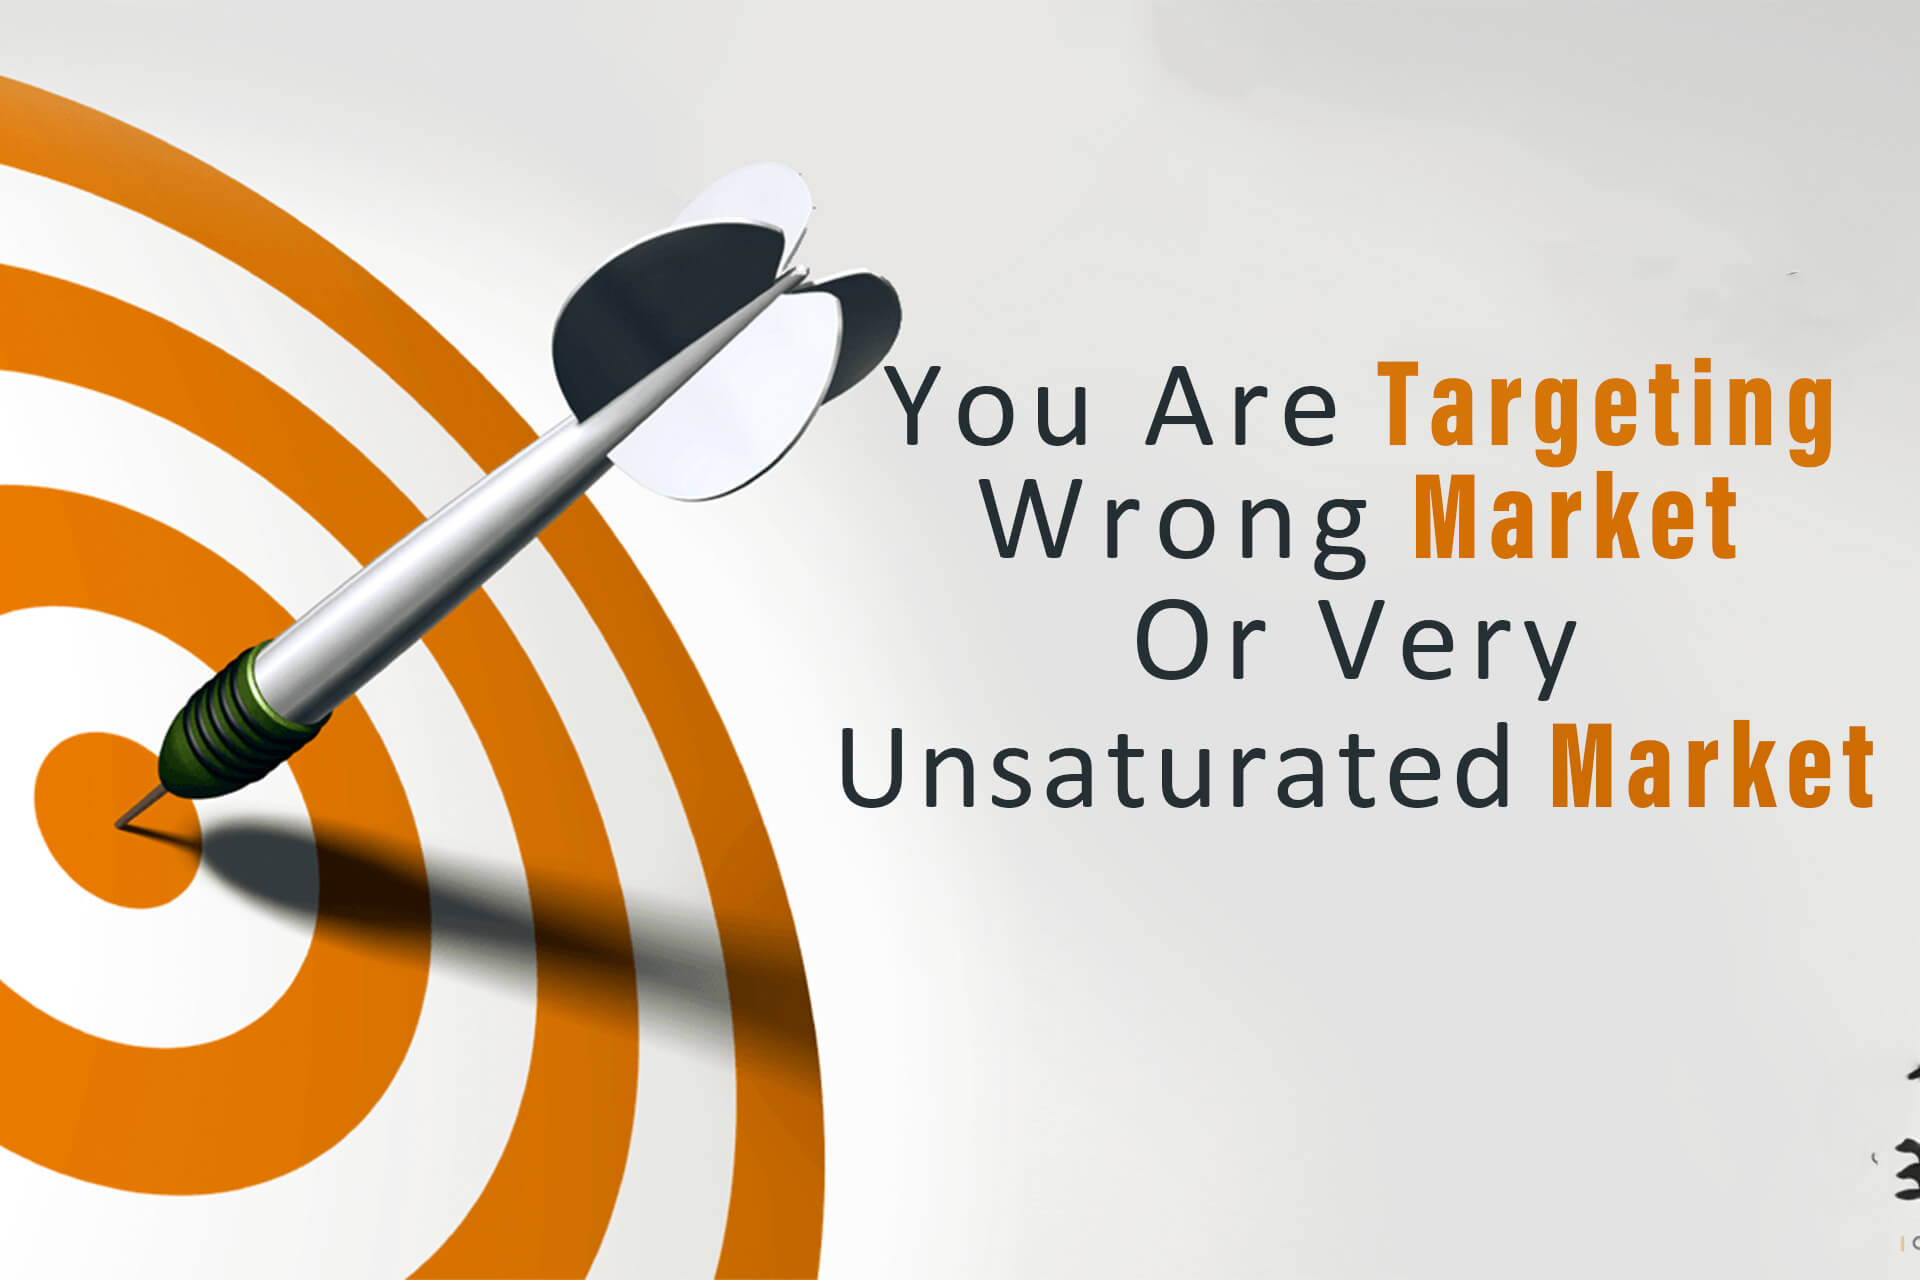 You Are Targeting Wrong Market Or Very Unsaturated Market